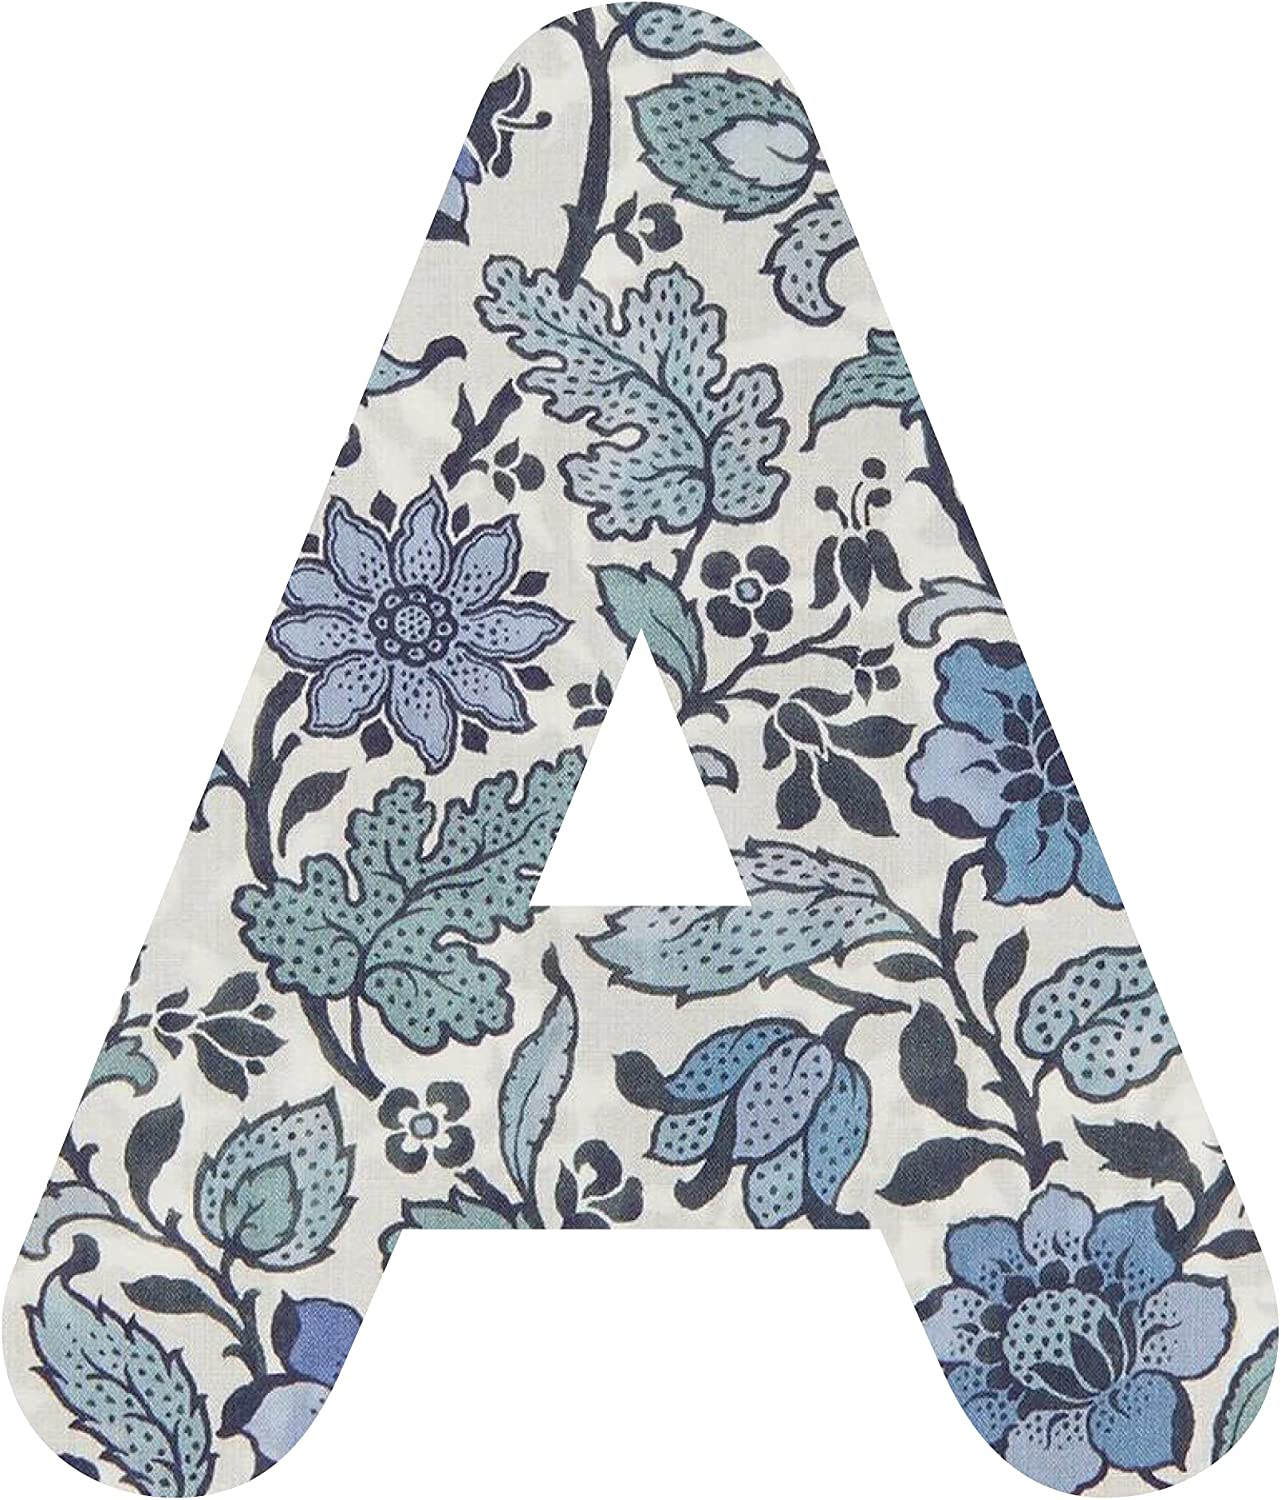 Sew Perfect Liberty Emery Walker Inch-A A Applique-Letters Max Product 65% OFF 2